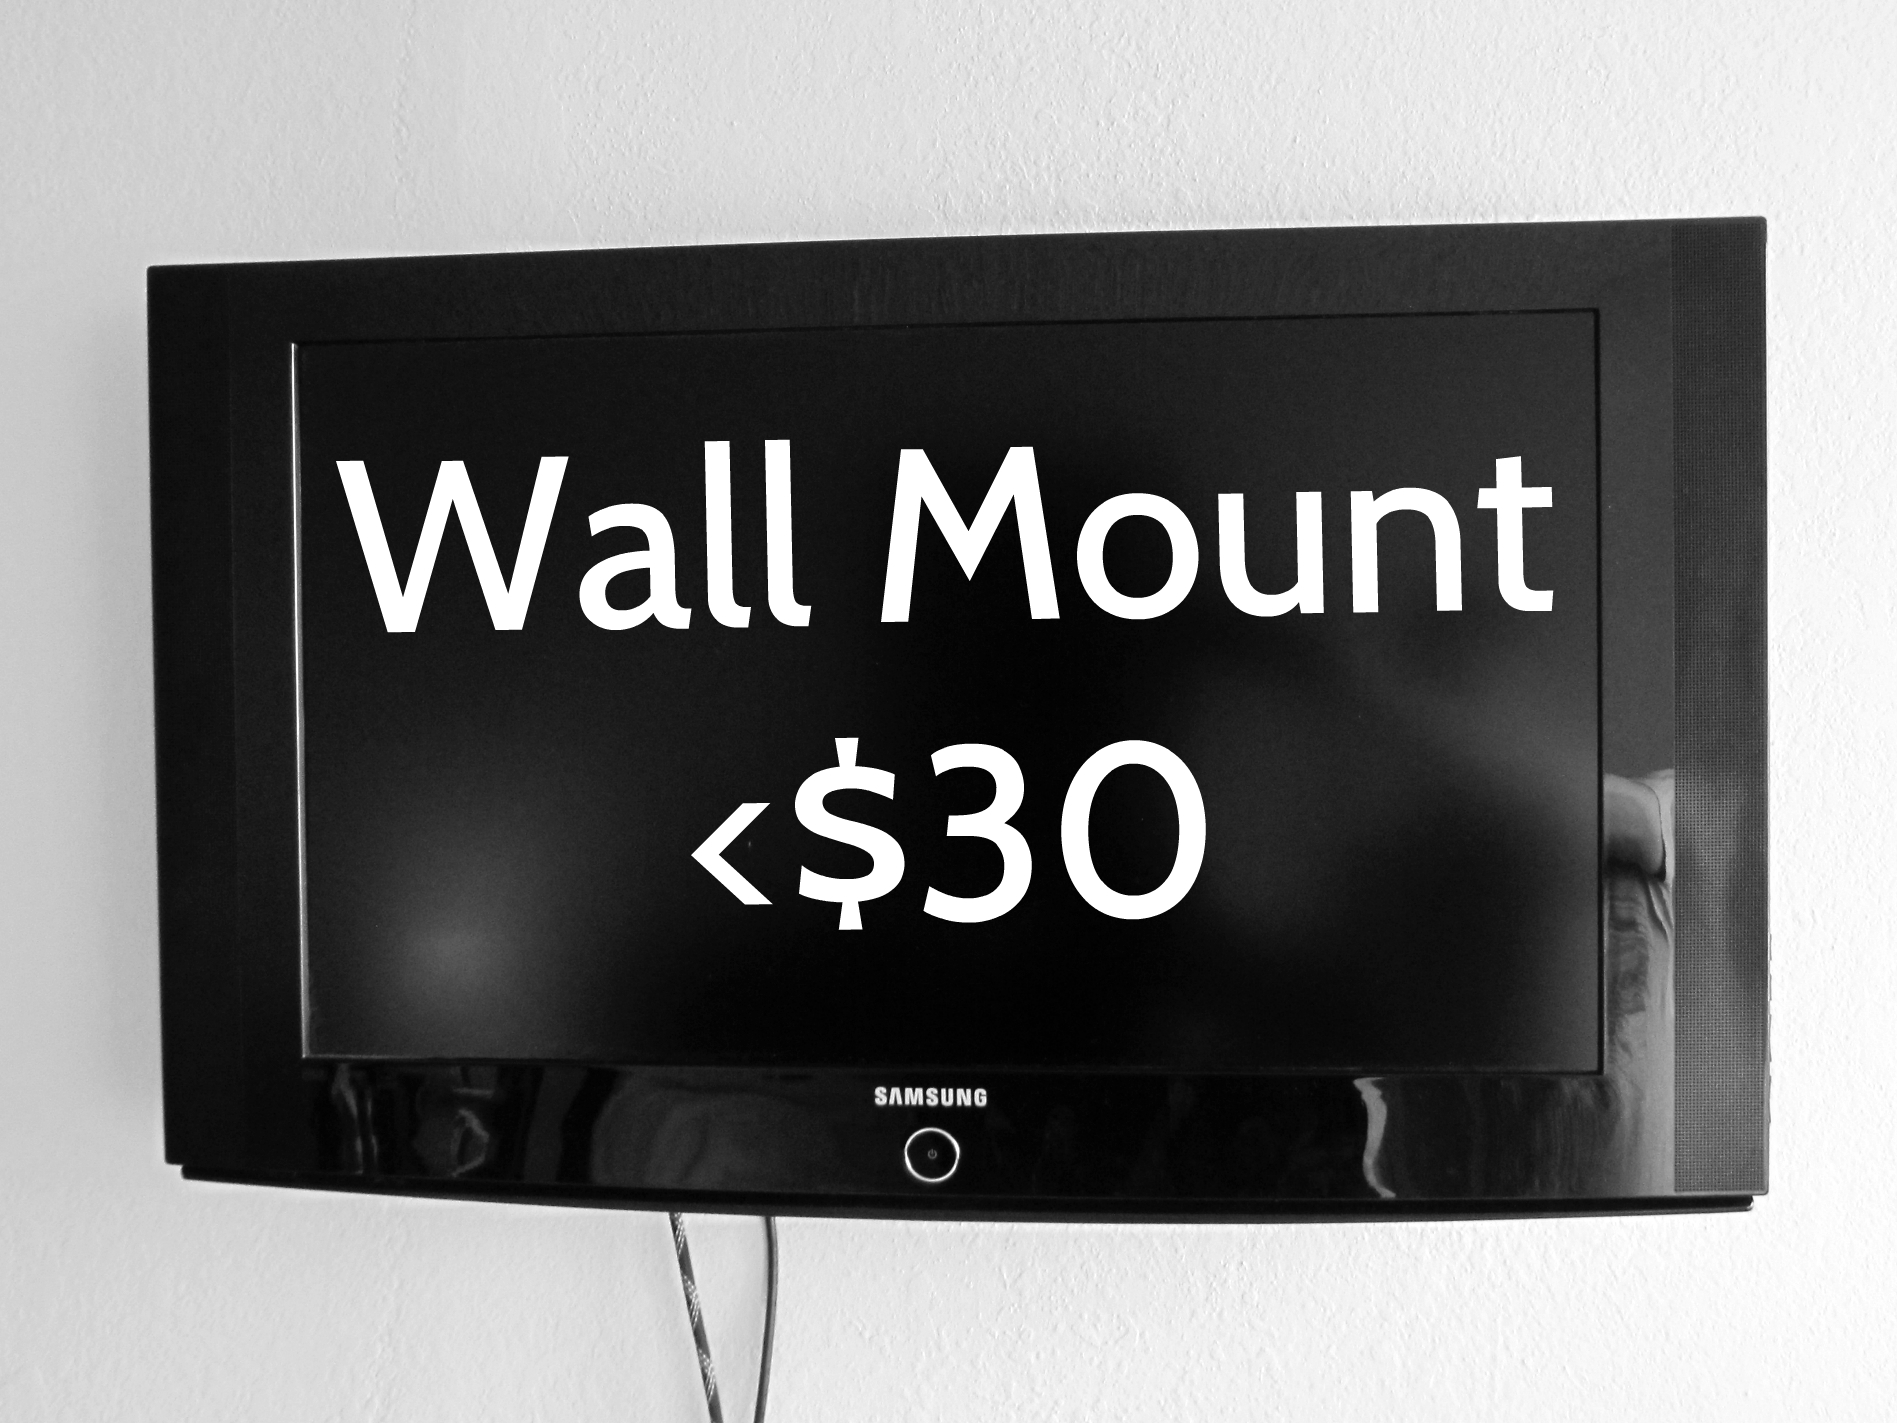 How to Wall Mount a Television (using a Cheetah Mount)